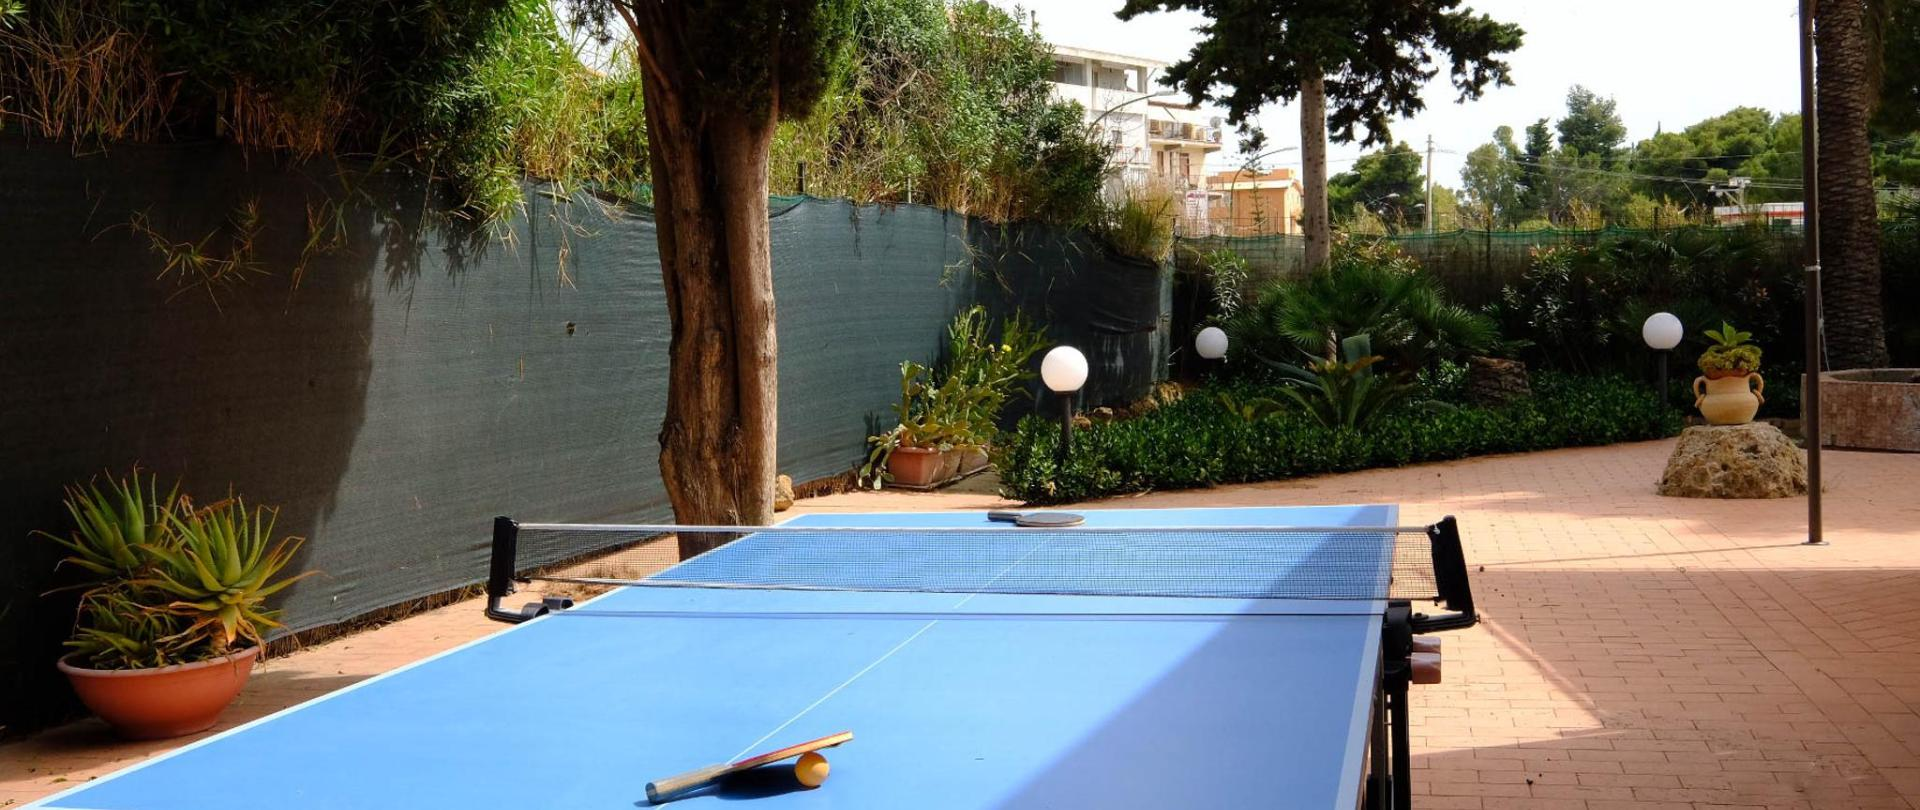 EMPORIUM GUEST HOUSE PING PONG.jpg